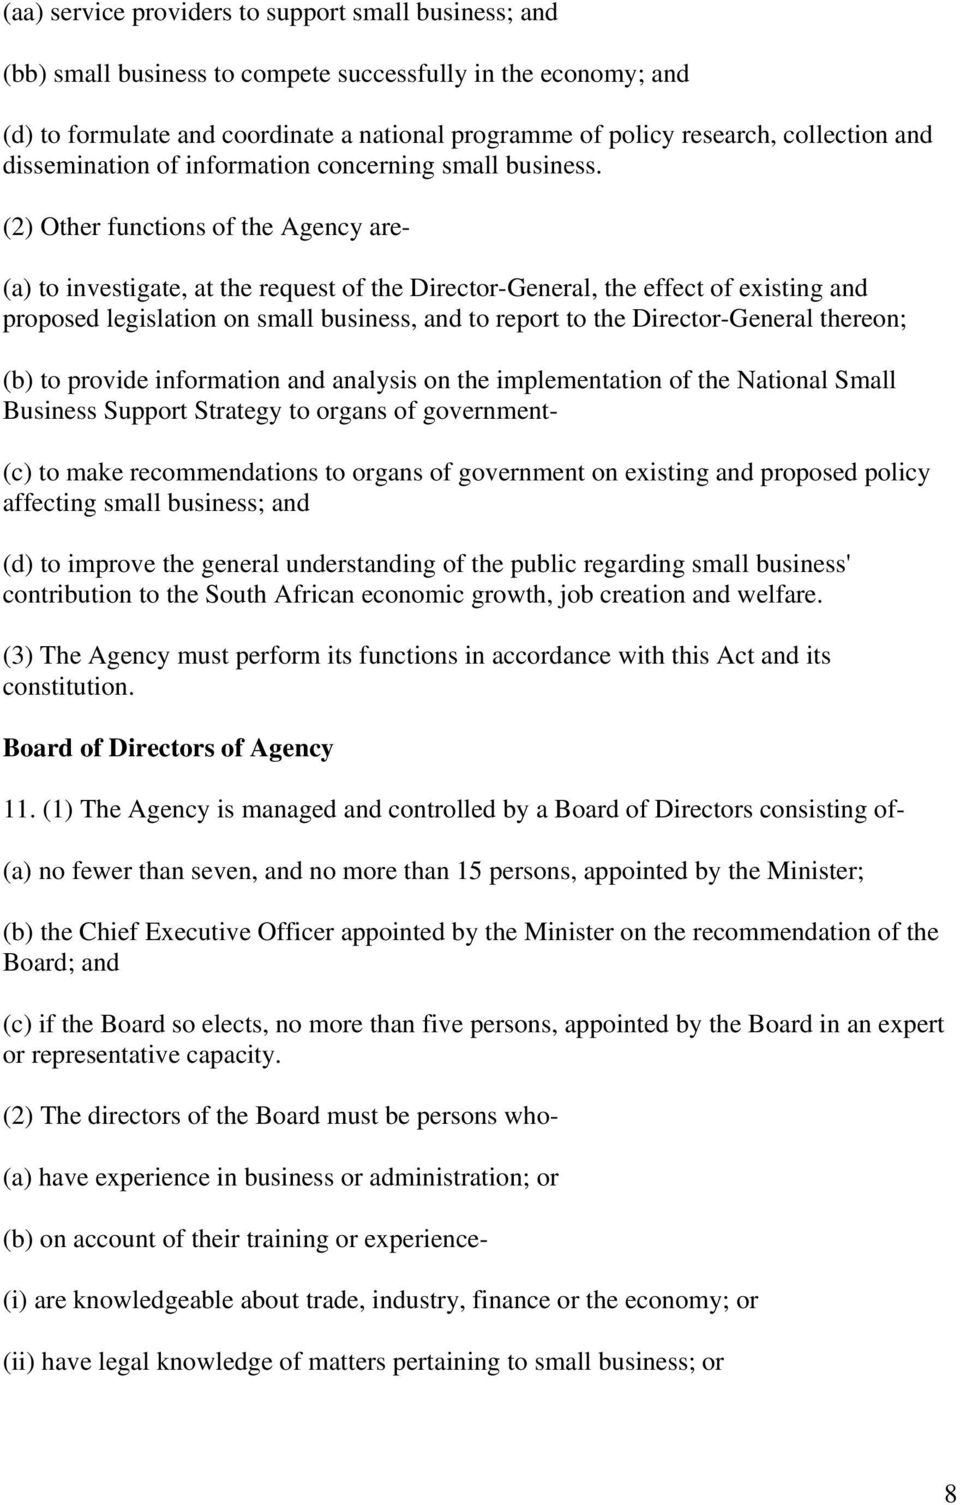 (2) Other functions of the Agency are- (a) to investigate, at the request of the Director-General, the effect of existing and proposed legislation on small business, and to report to the